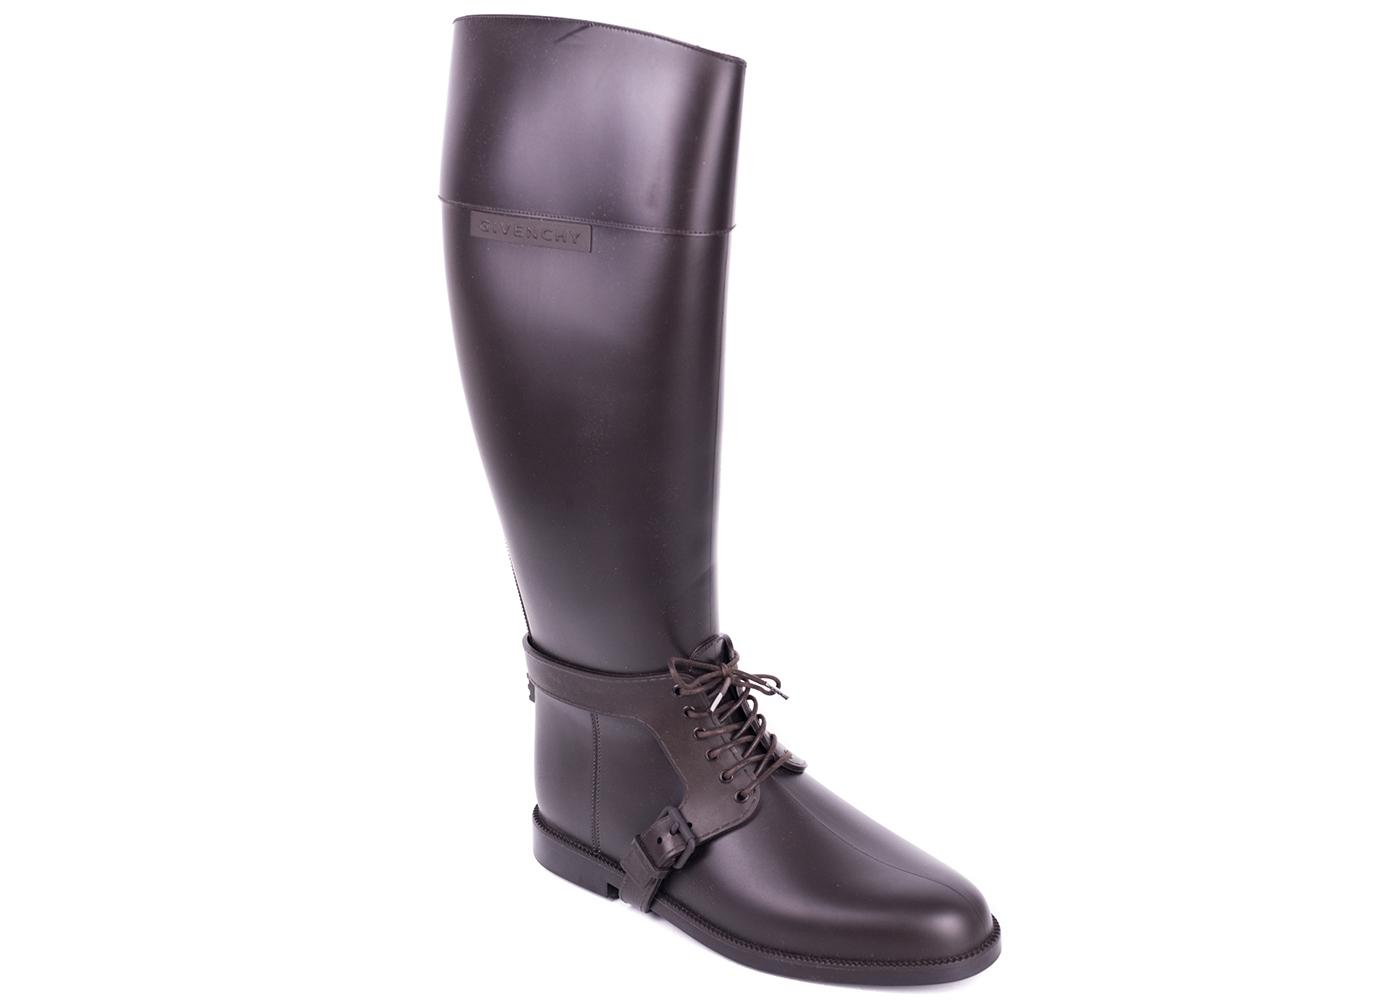 lowest price clearance looking for Givenchy Brown Rubber Equestrian... outlet locations sale online cwOqwsUtS